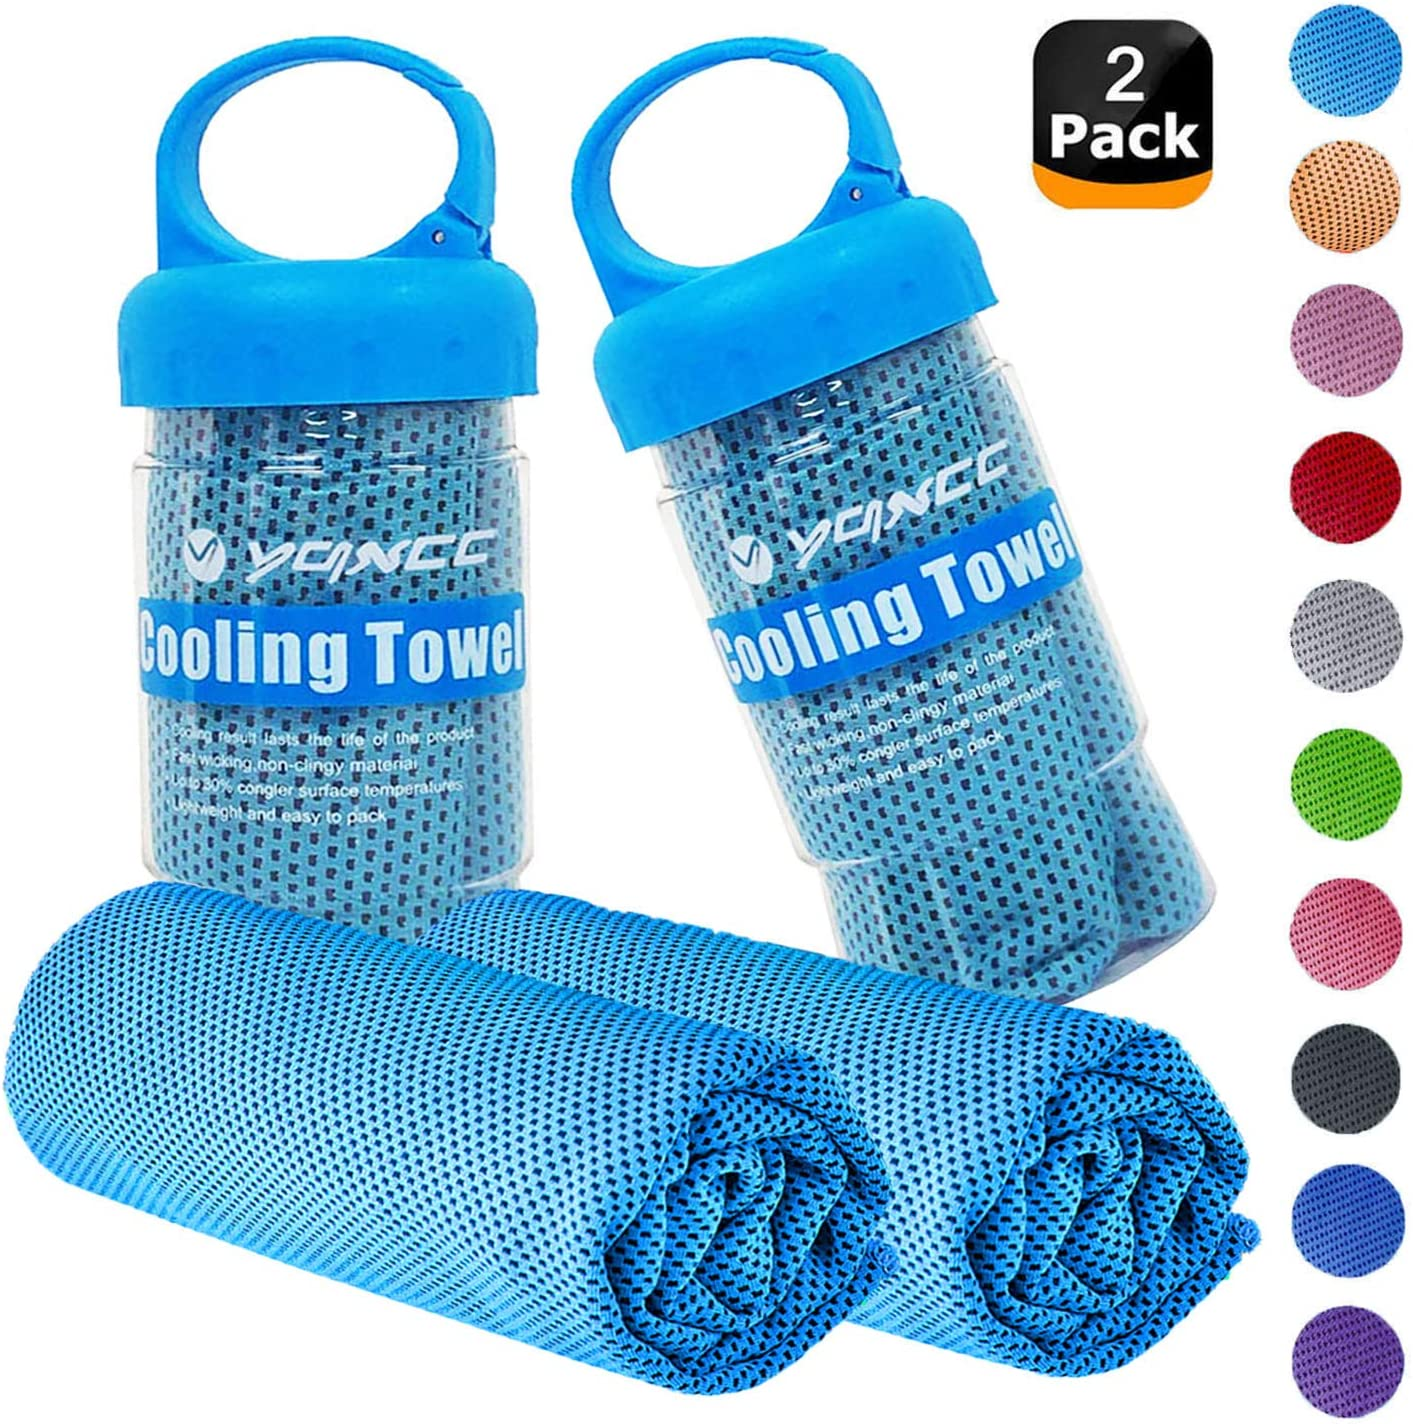 """YQXCC Cooling Towels 2 Pack (47""""x12"""") Travel Towel Microfiber Gym Towel for Men or Women Ice Cold Towels for Yoga Gym Travel Camping Golf Football & Outdoor Sports"""